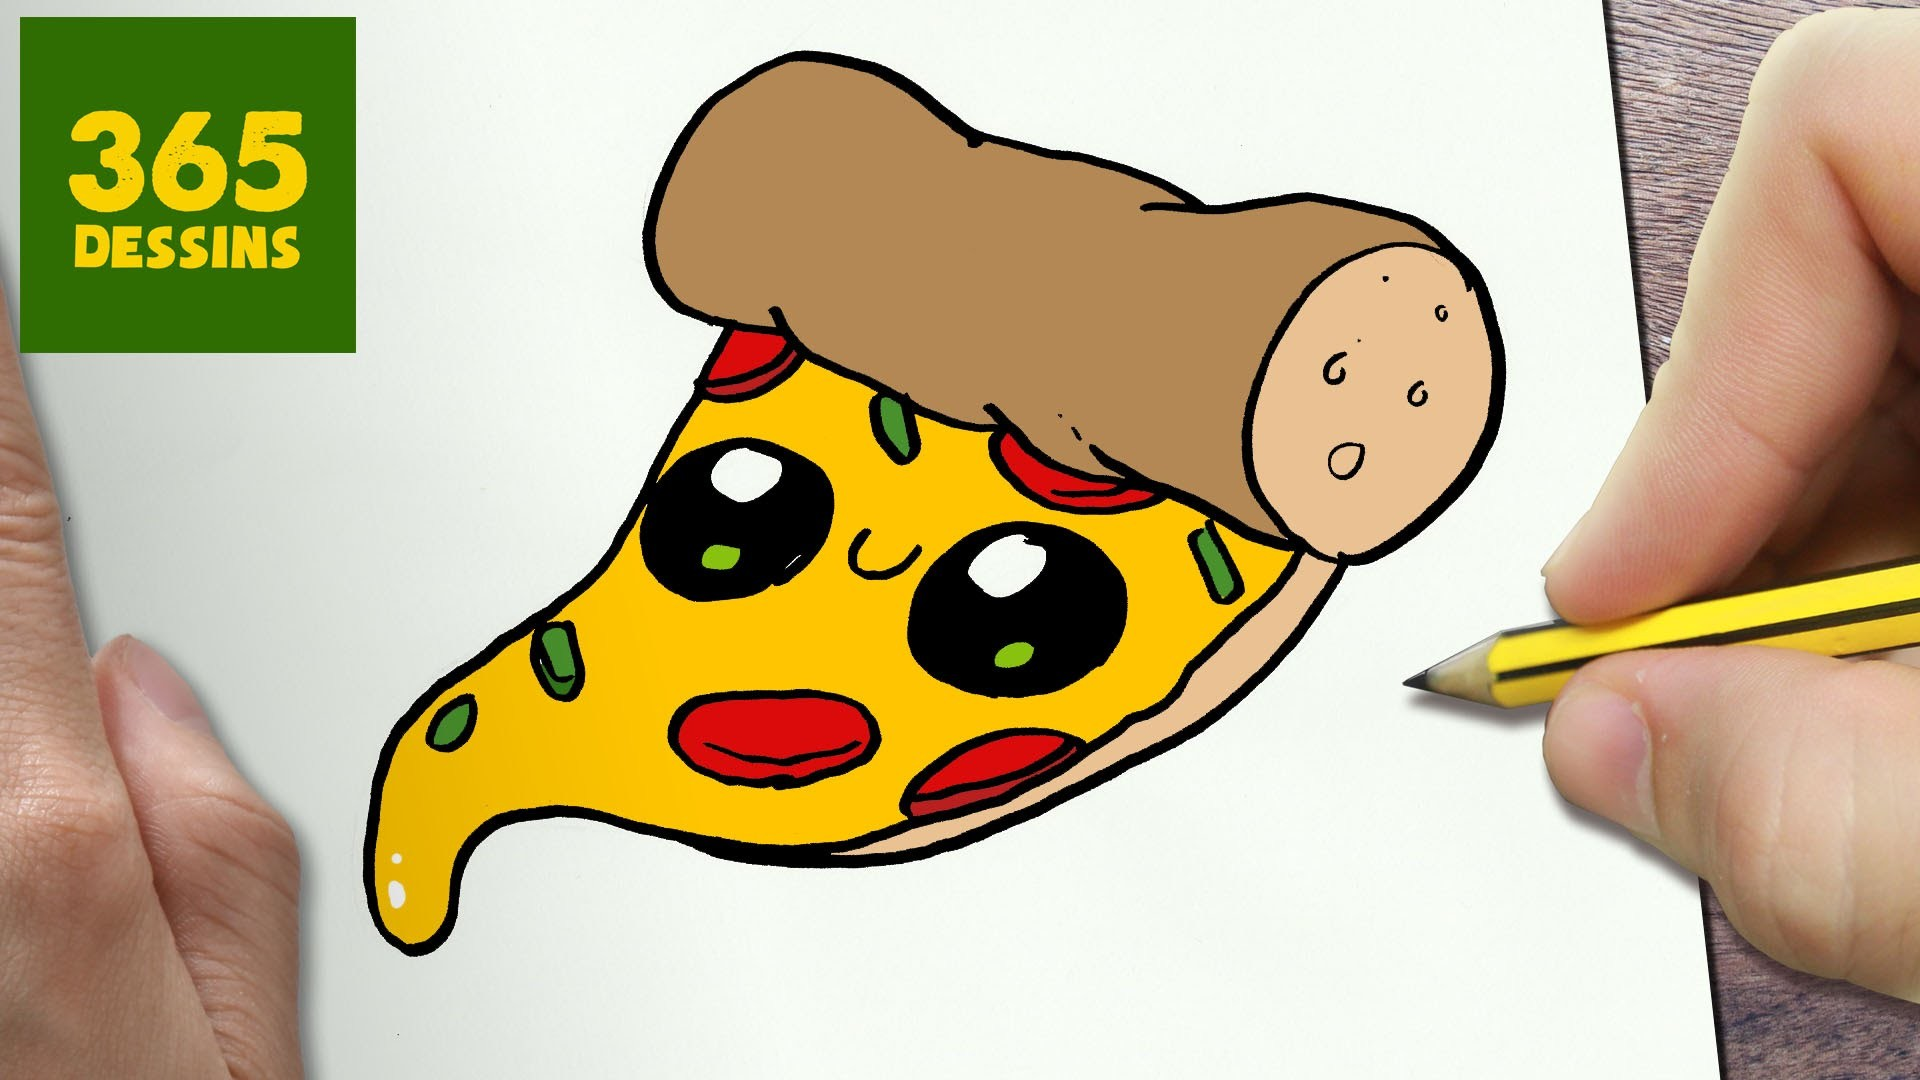 Comment Dessiner Pizza Kawaii étape Par étape Dessins